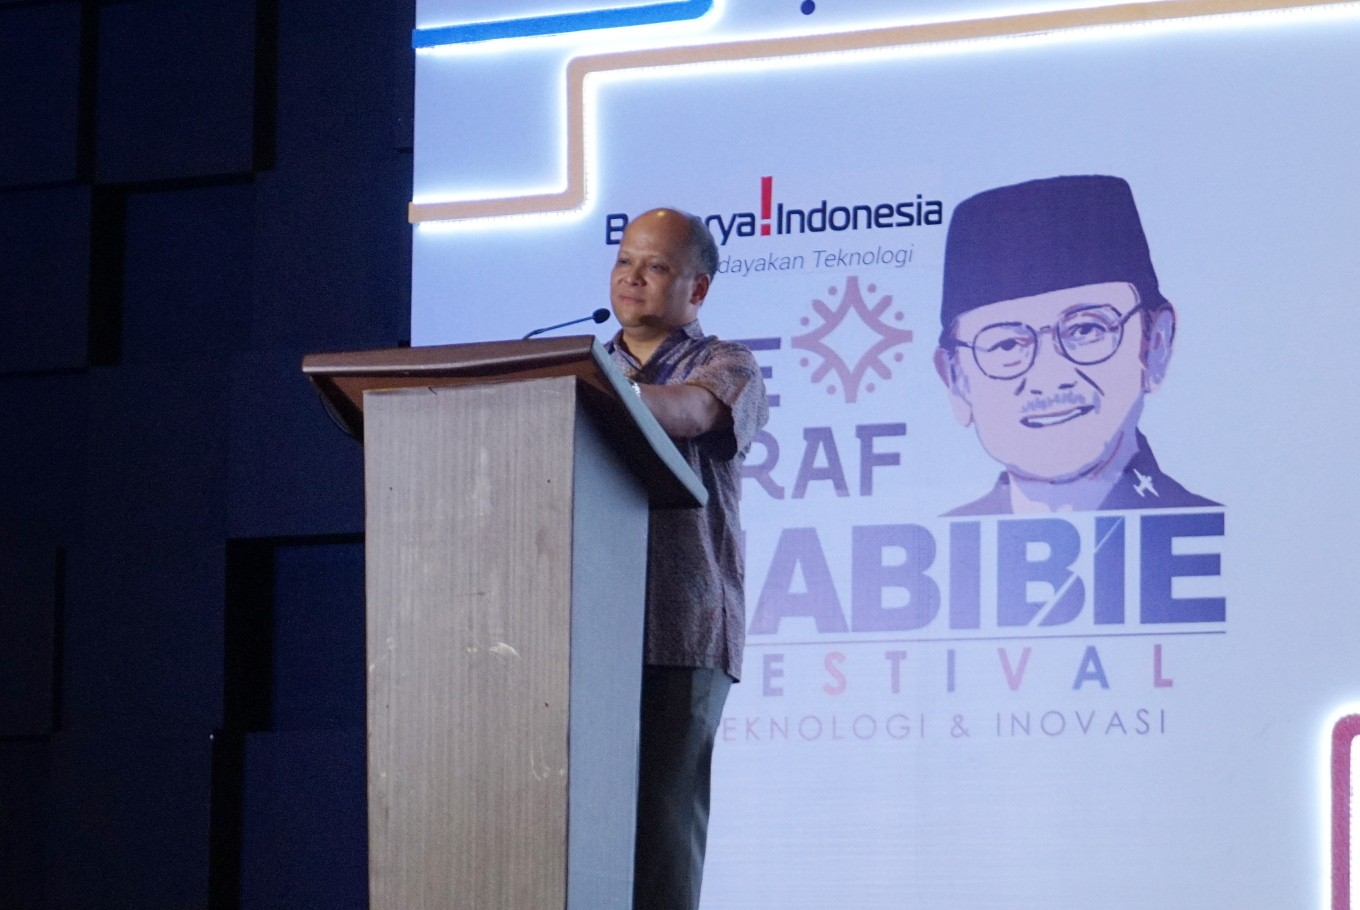 Envisioning Habibie 4.0: Egalitarian approach to digital economy